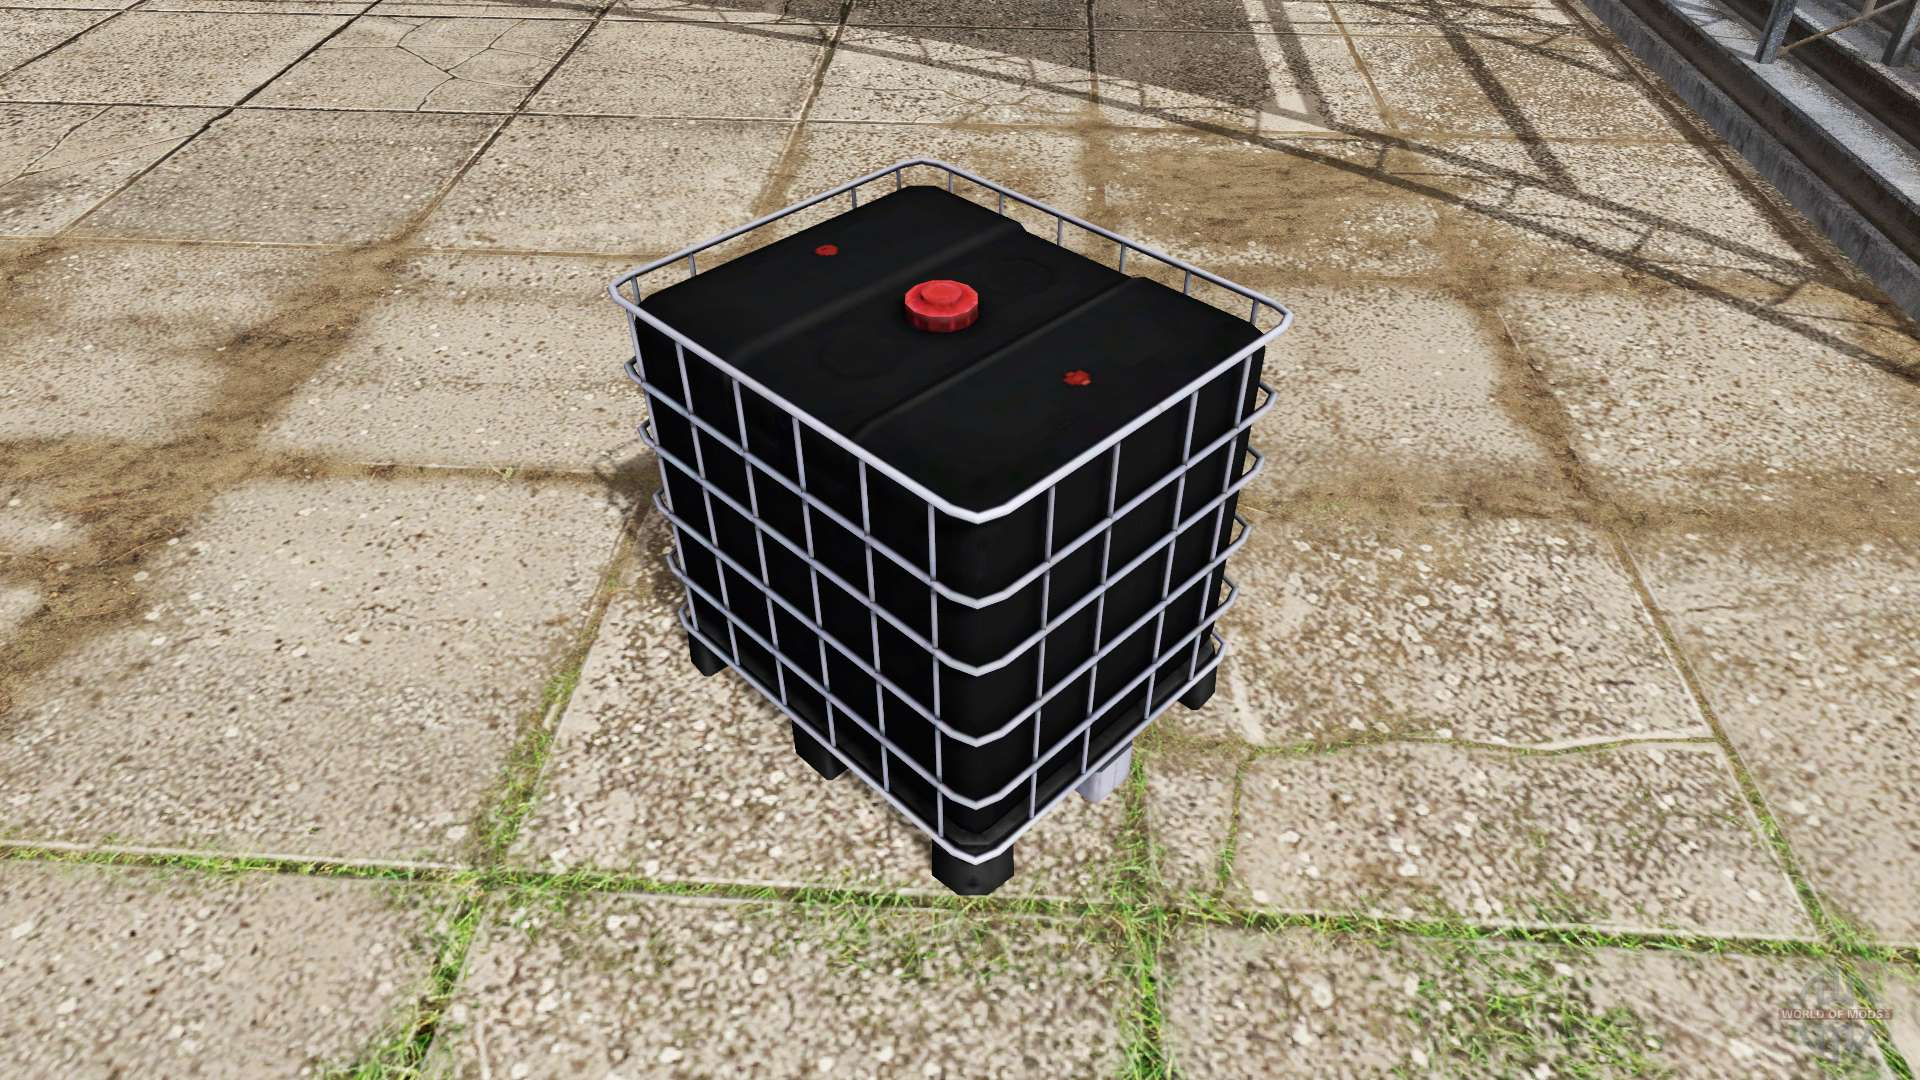 Auer packaging ibc container water pour farming simulator 2017 for Cout container